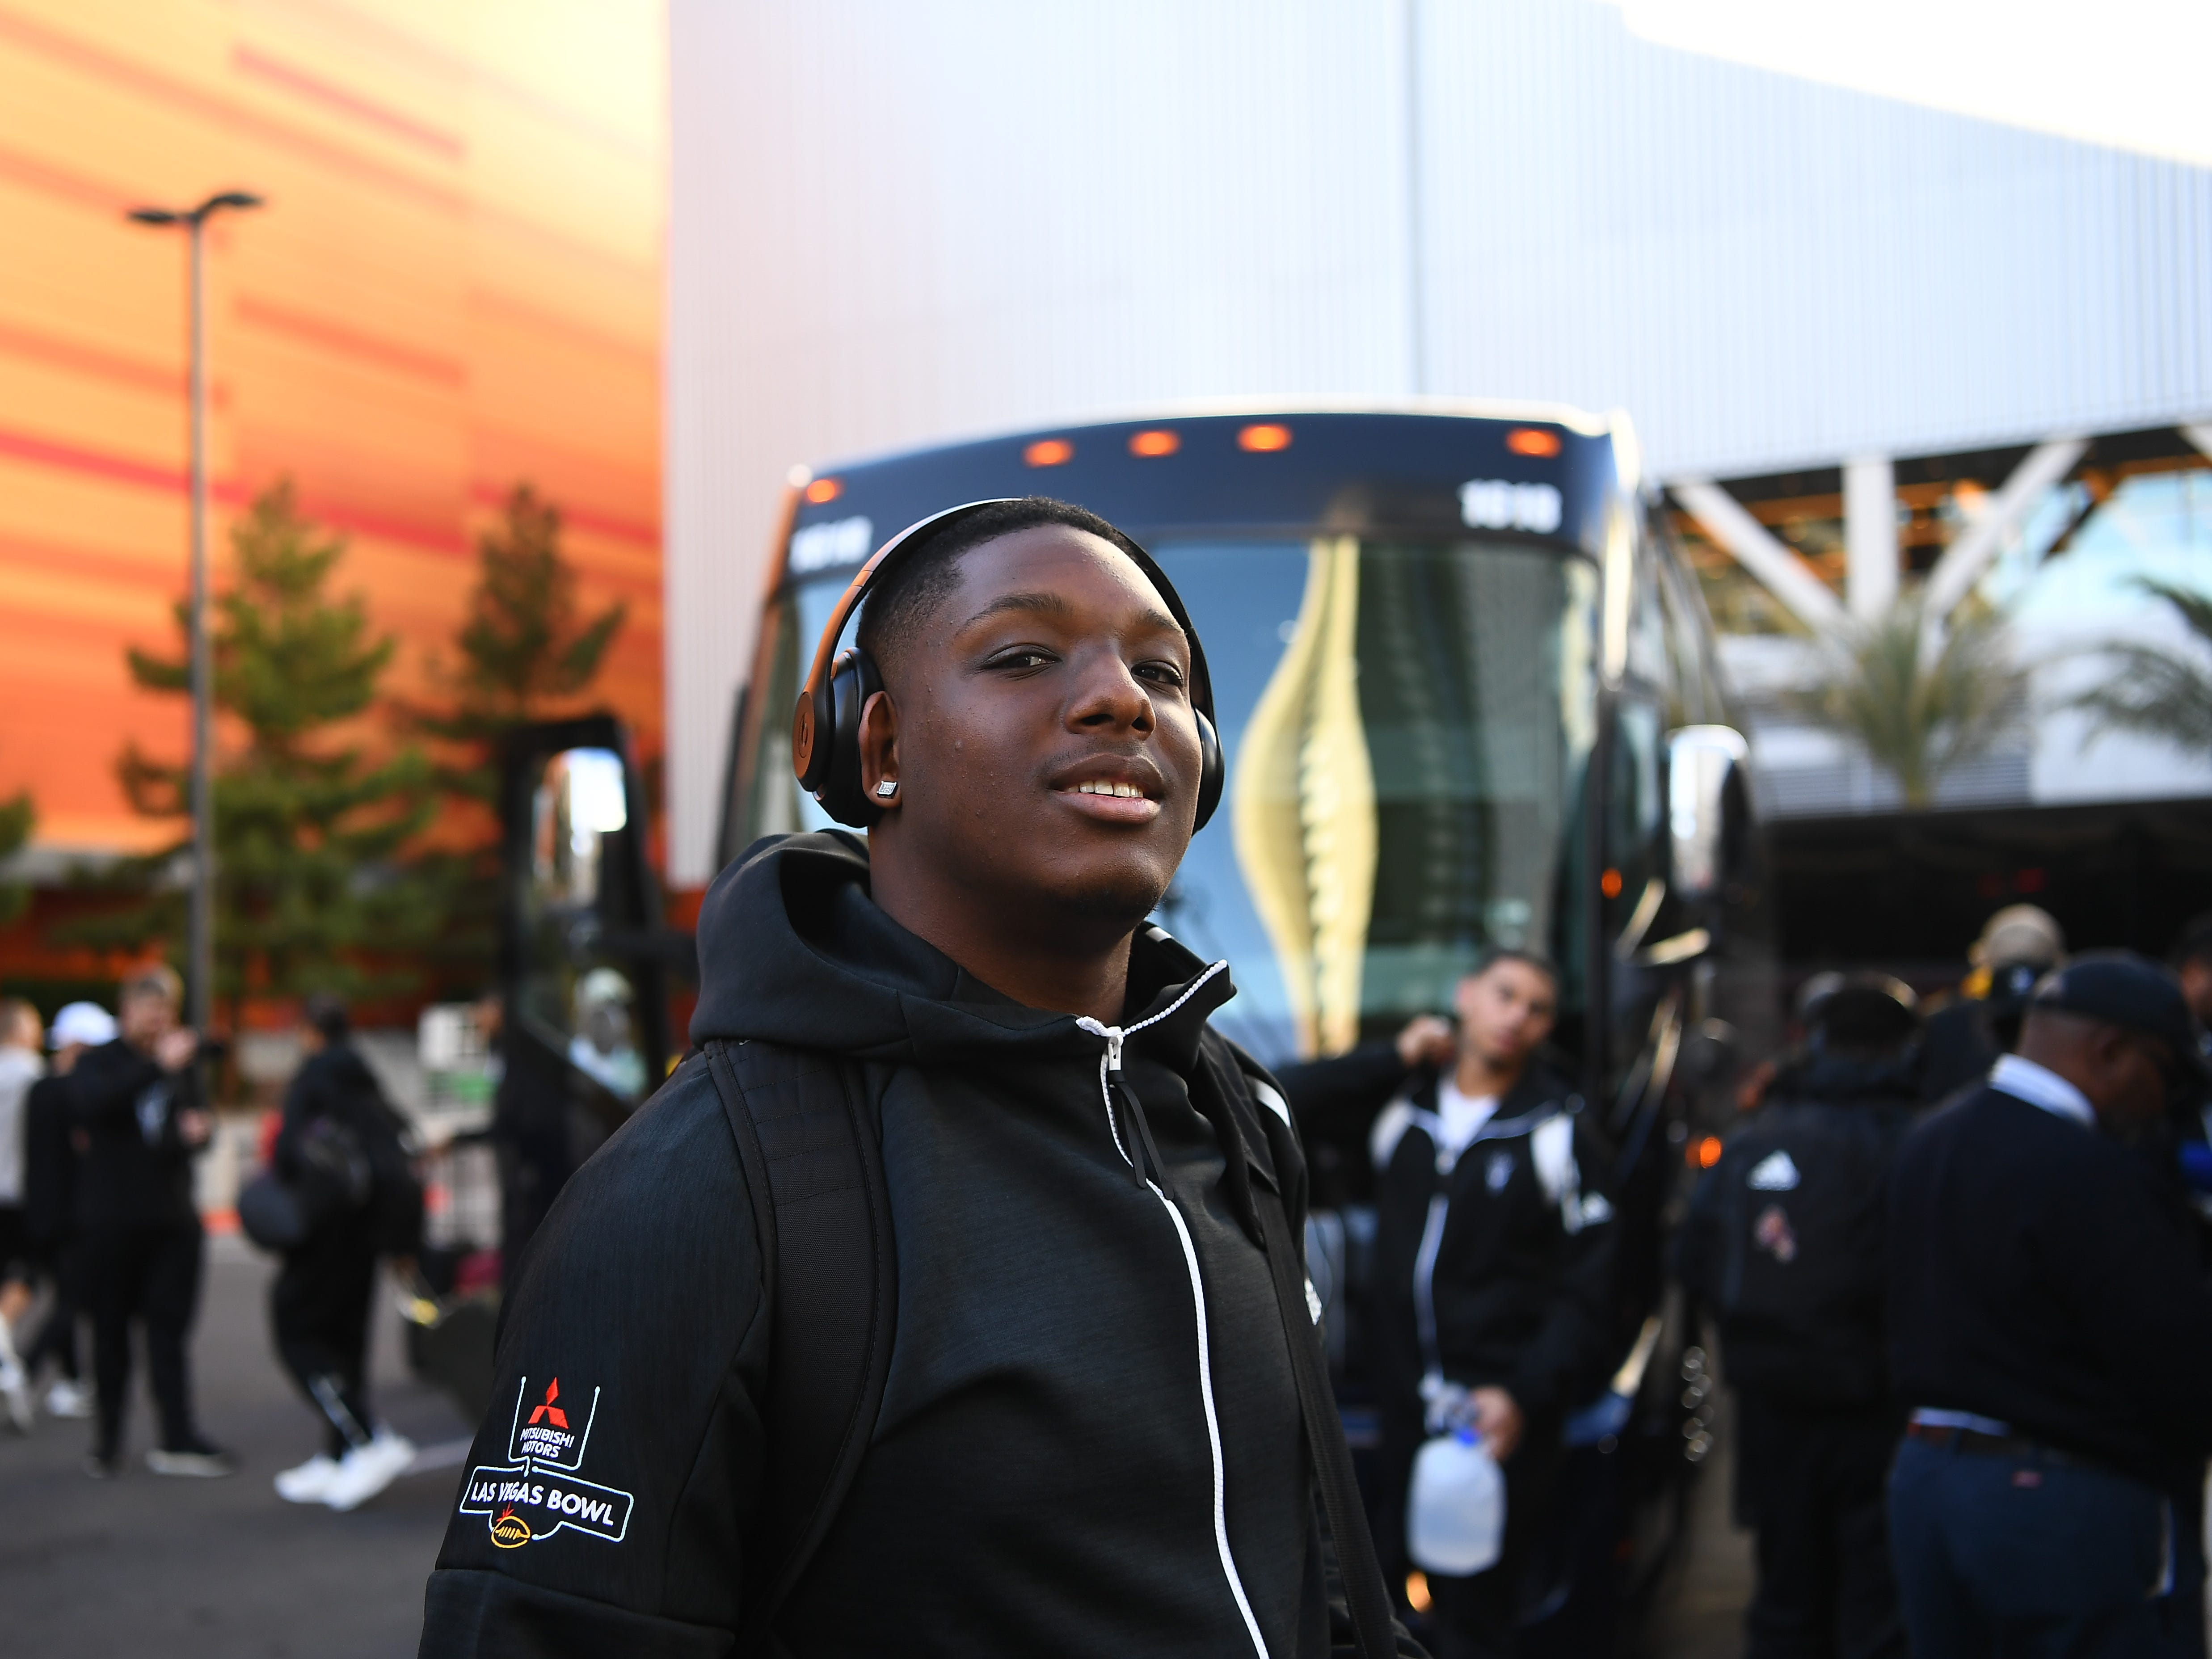 The ASU football team arrives at the Park MGM in Las Vegas on Tuesday.